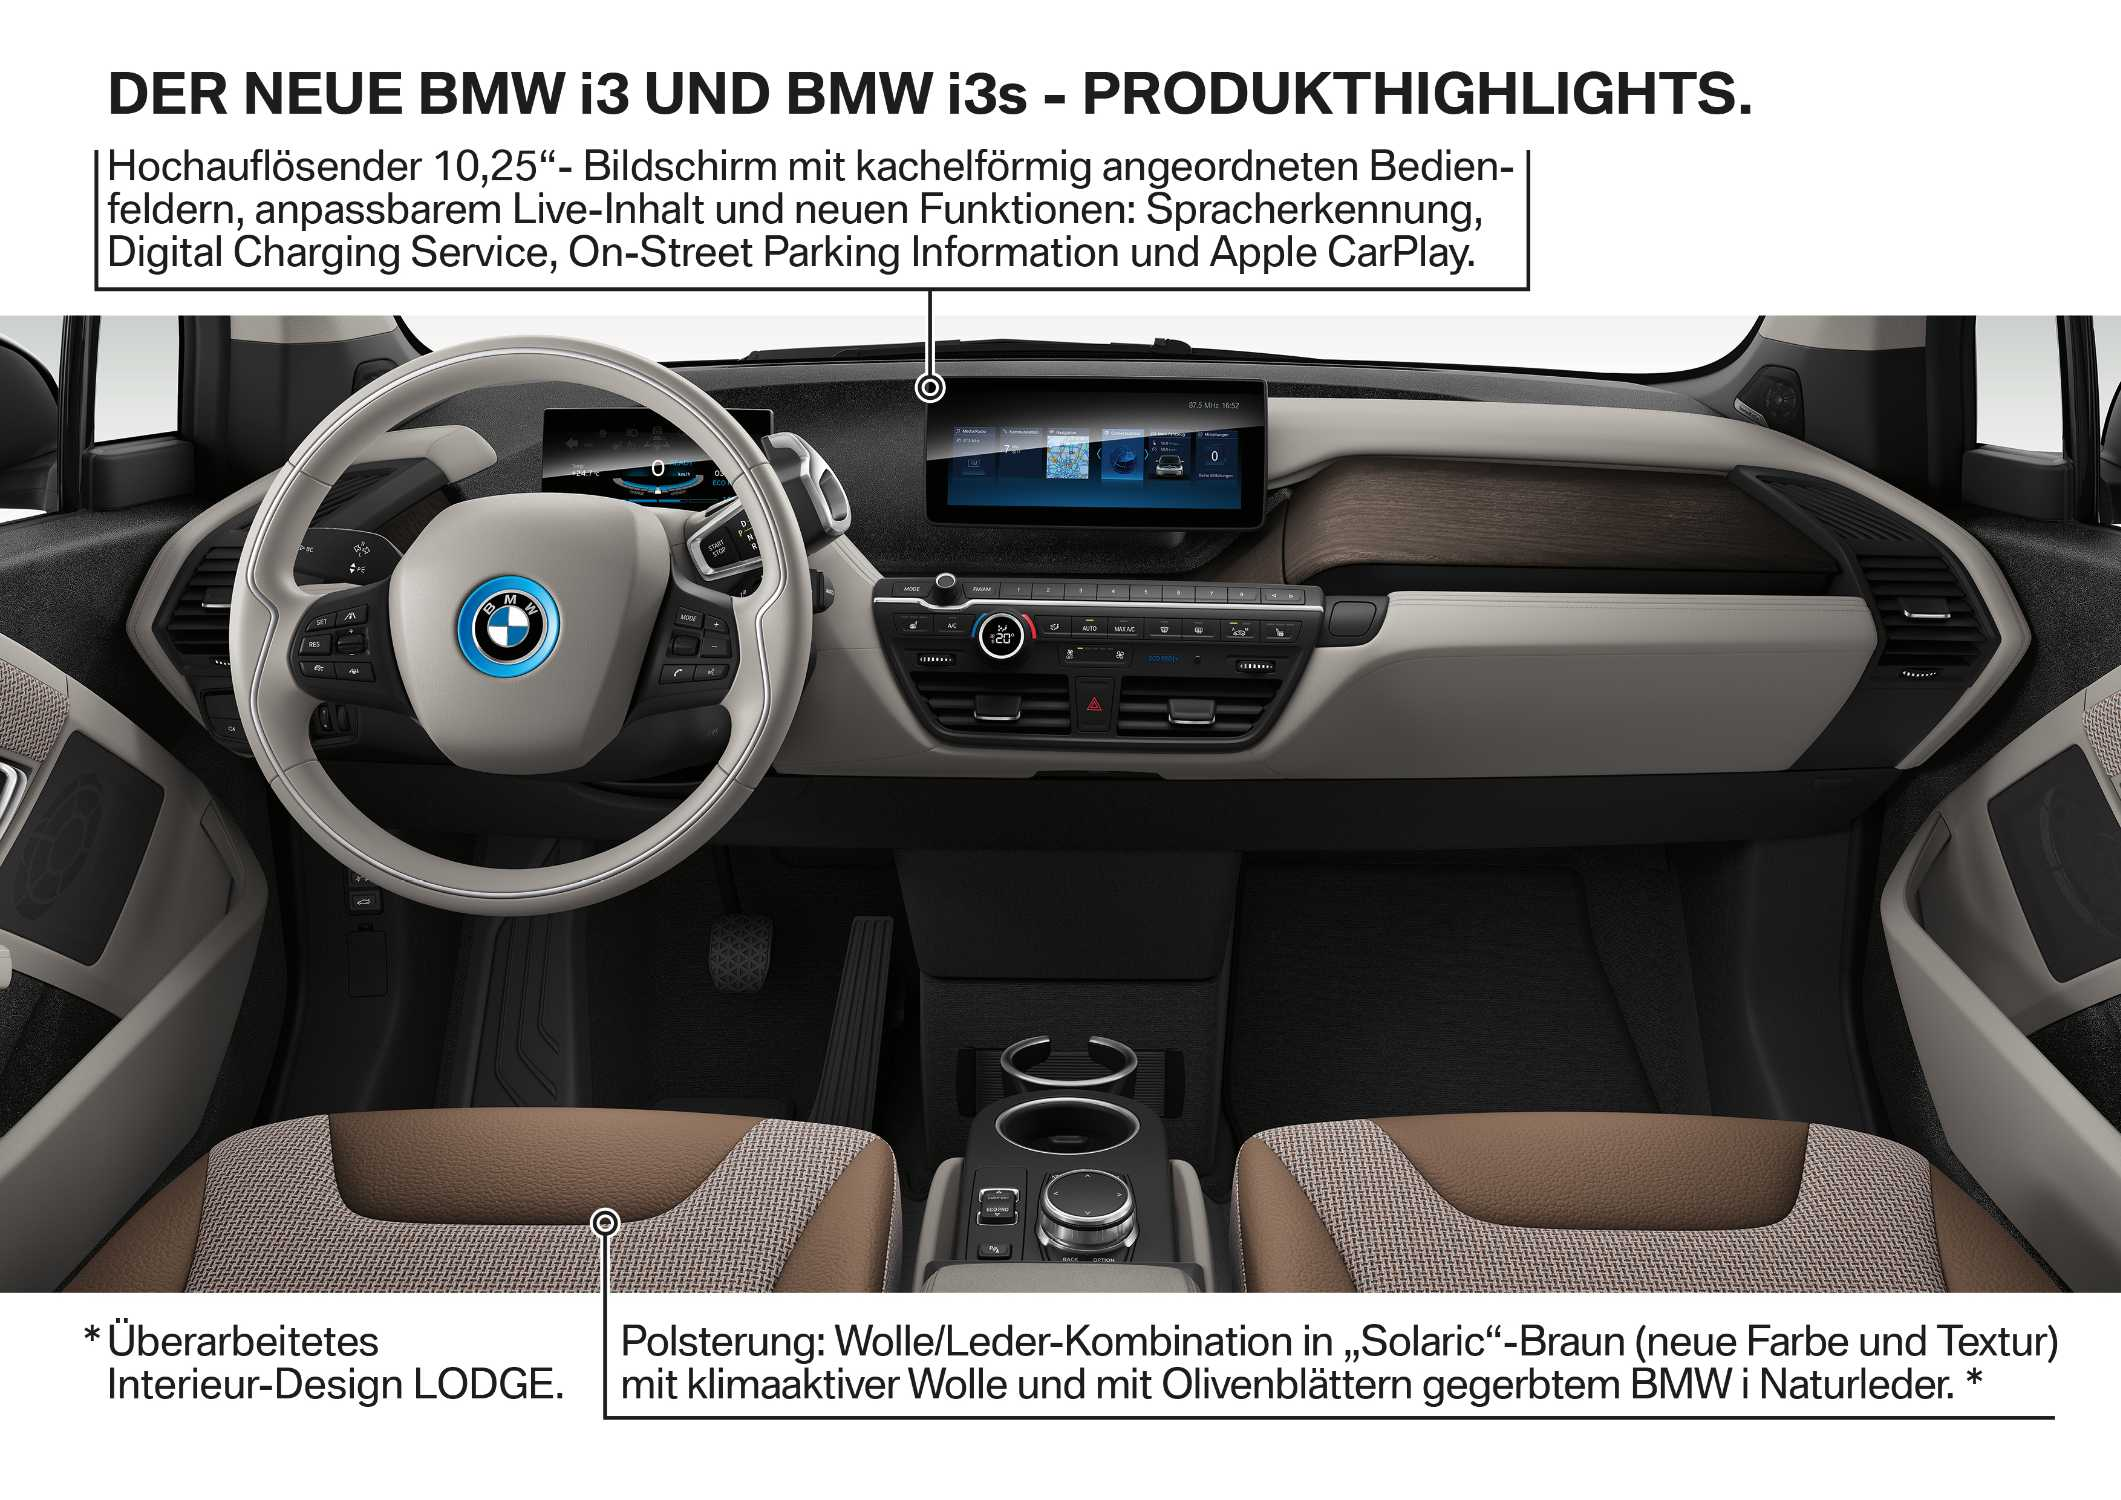 The New Bmw I3 And Bmw I3s Product Highlights 082017